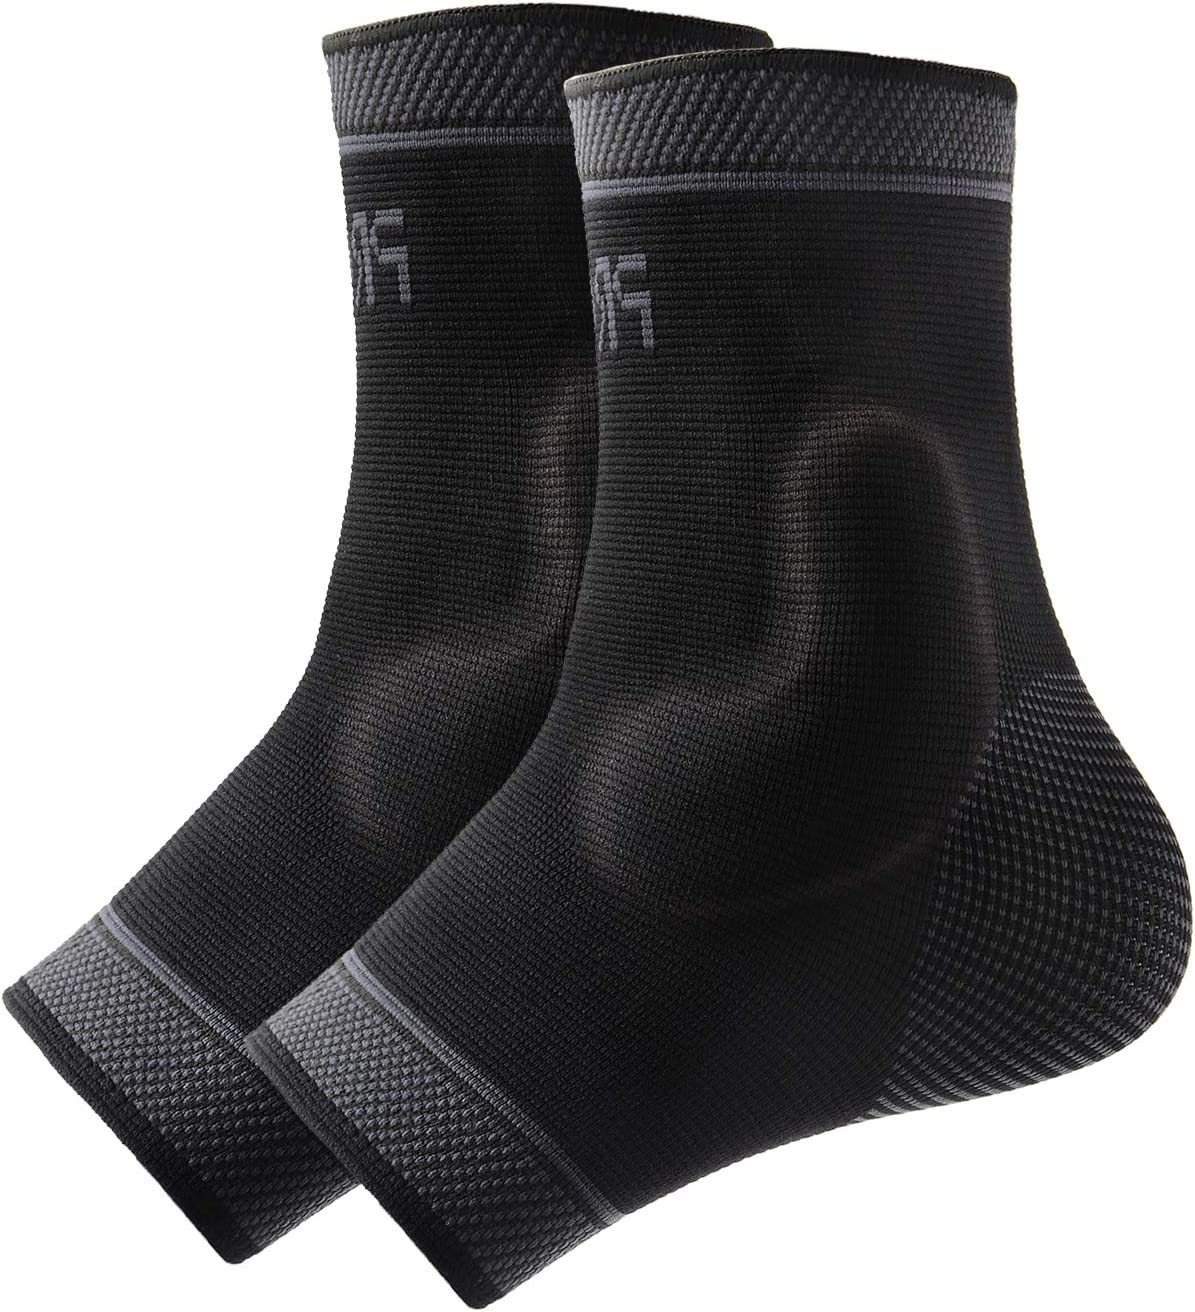 Protle Foot Socks Ankle Brace Si Support Sleeve with Regular Sale store Compression